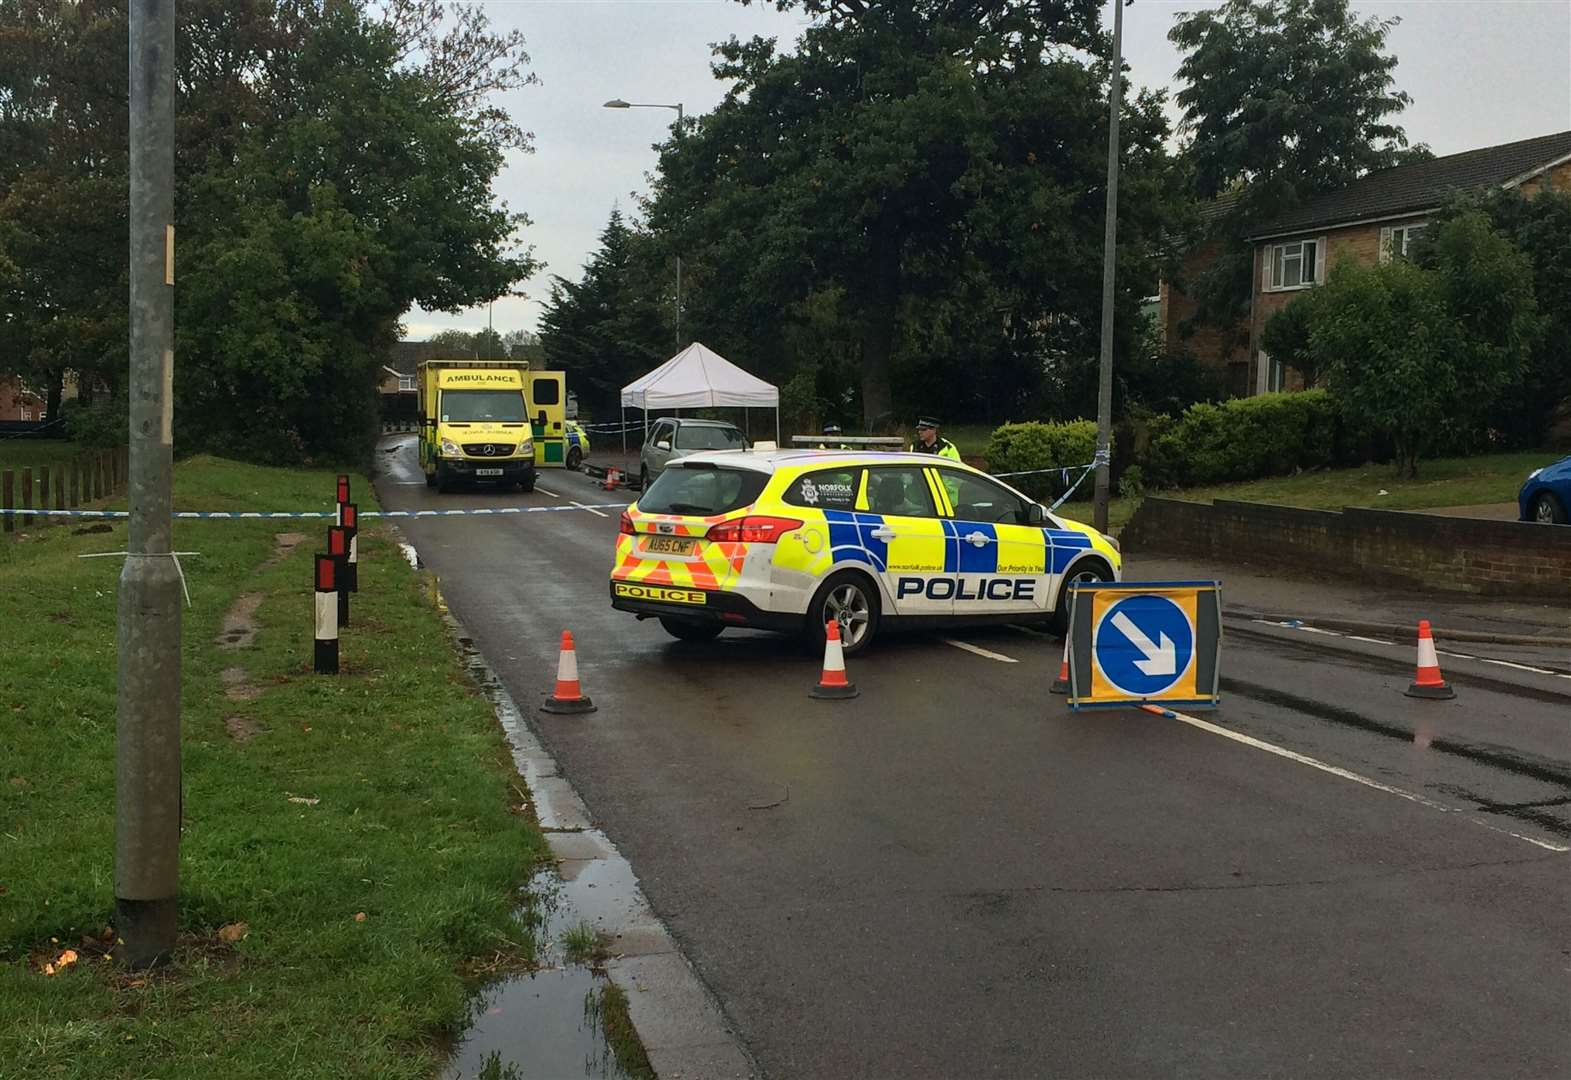 A man has been arrested in Haverhill on suspicion of committing a murder in Thetford